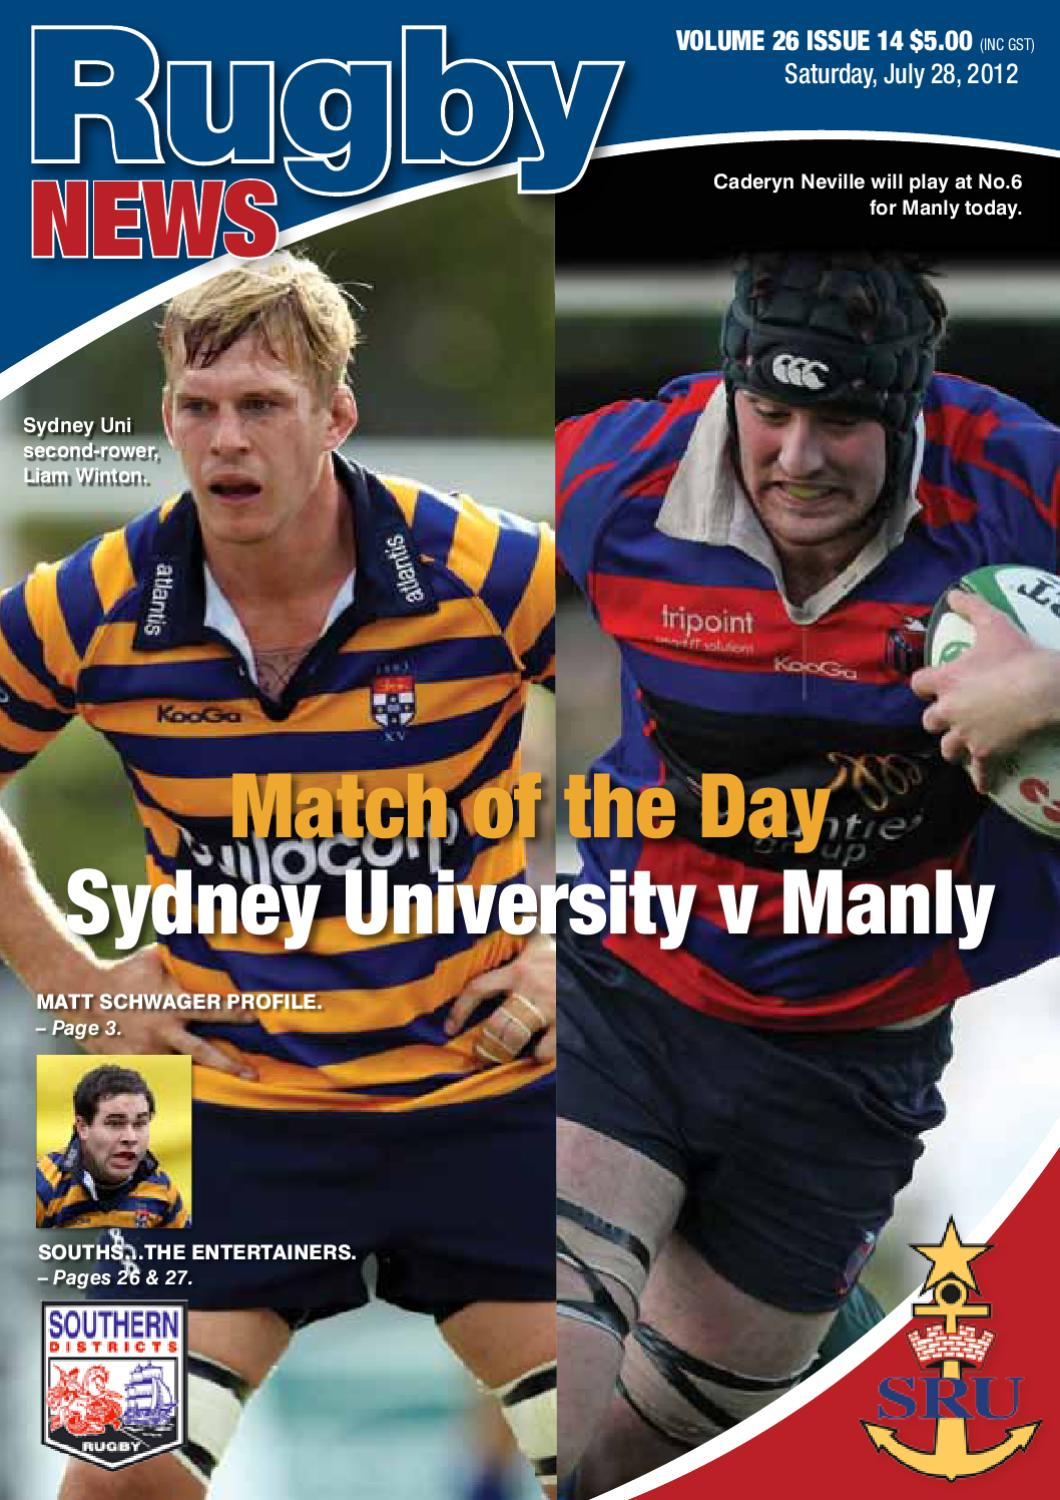 Rugby News Issue 14 by Jim Davis - issuu